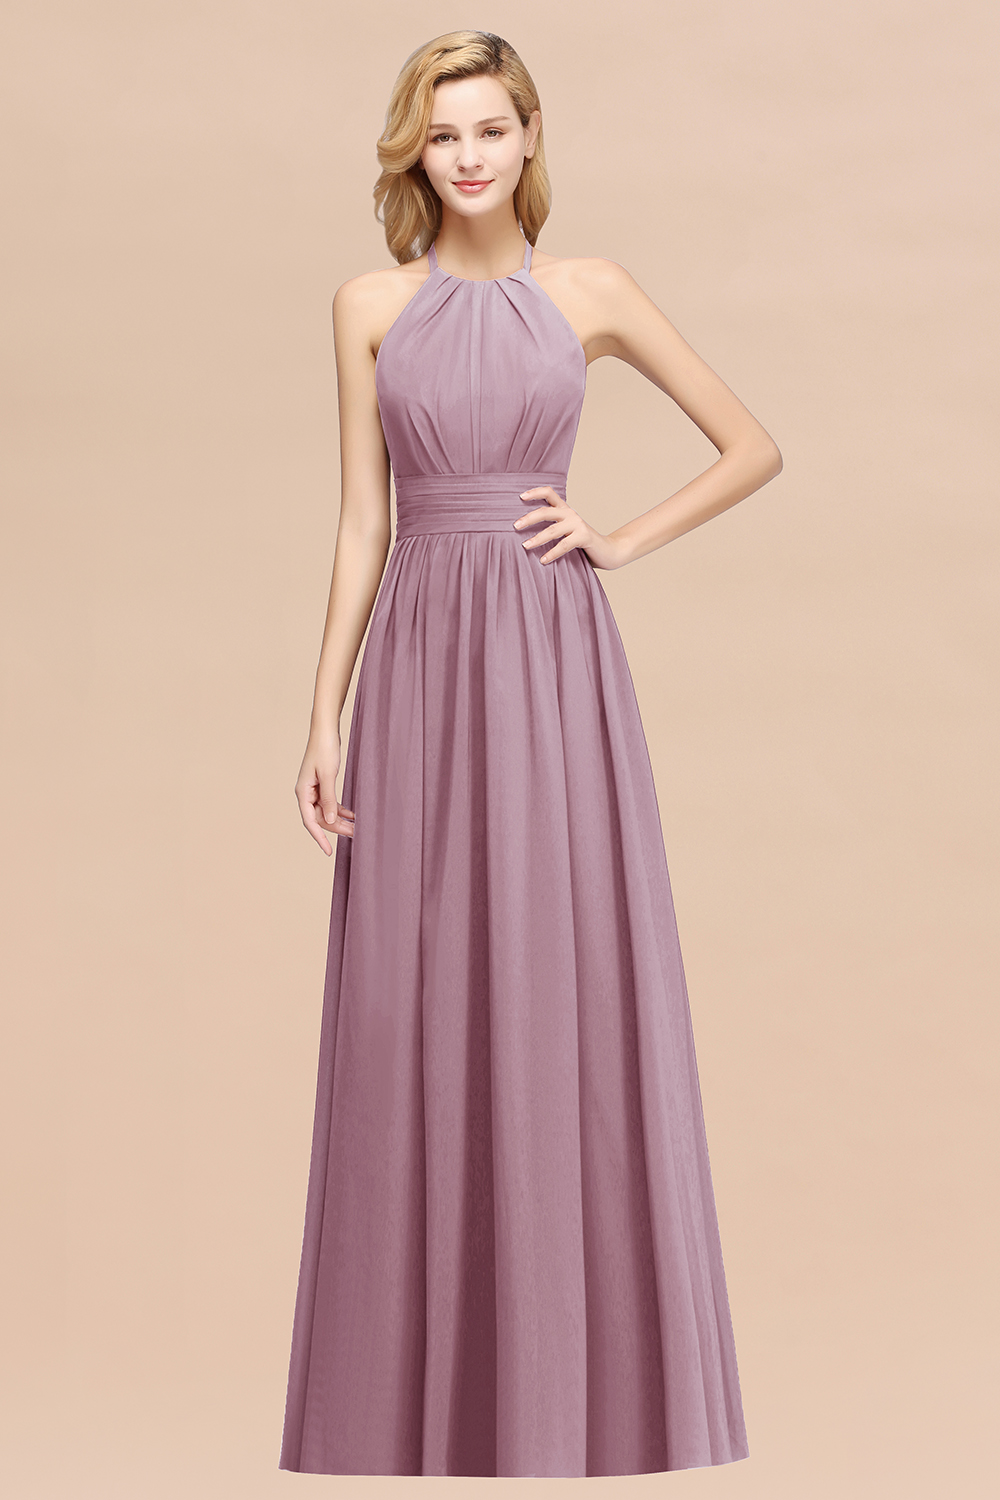 BMbridal Elegant High-Neck Halter Long Affordable Bridesmaid Dresses with Ruffles